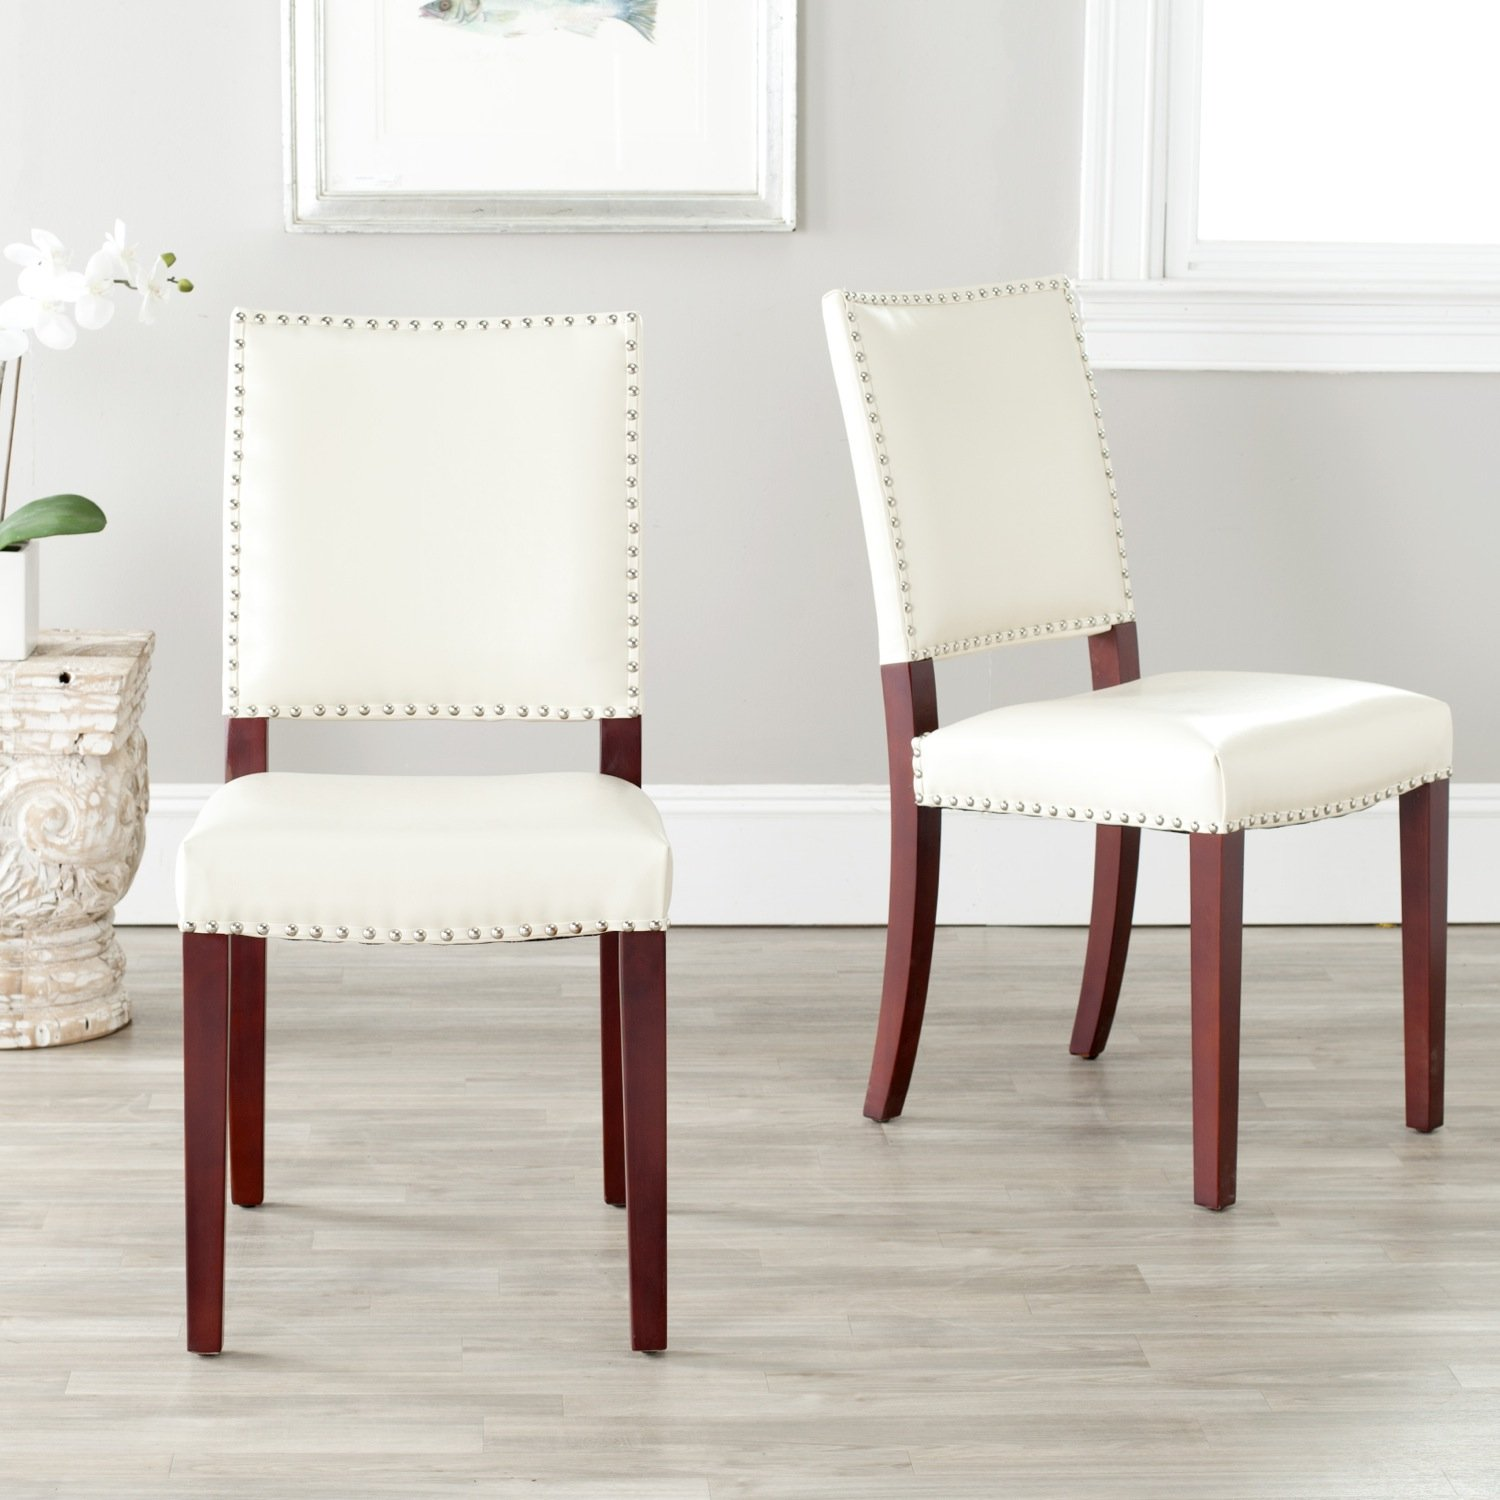 Ordinaire Amazon.com: Safavieh Mercer Collection Colette Leather Side Chairs, Cream,  Set Of 2: Kitchen U0026 Dining